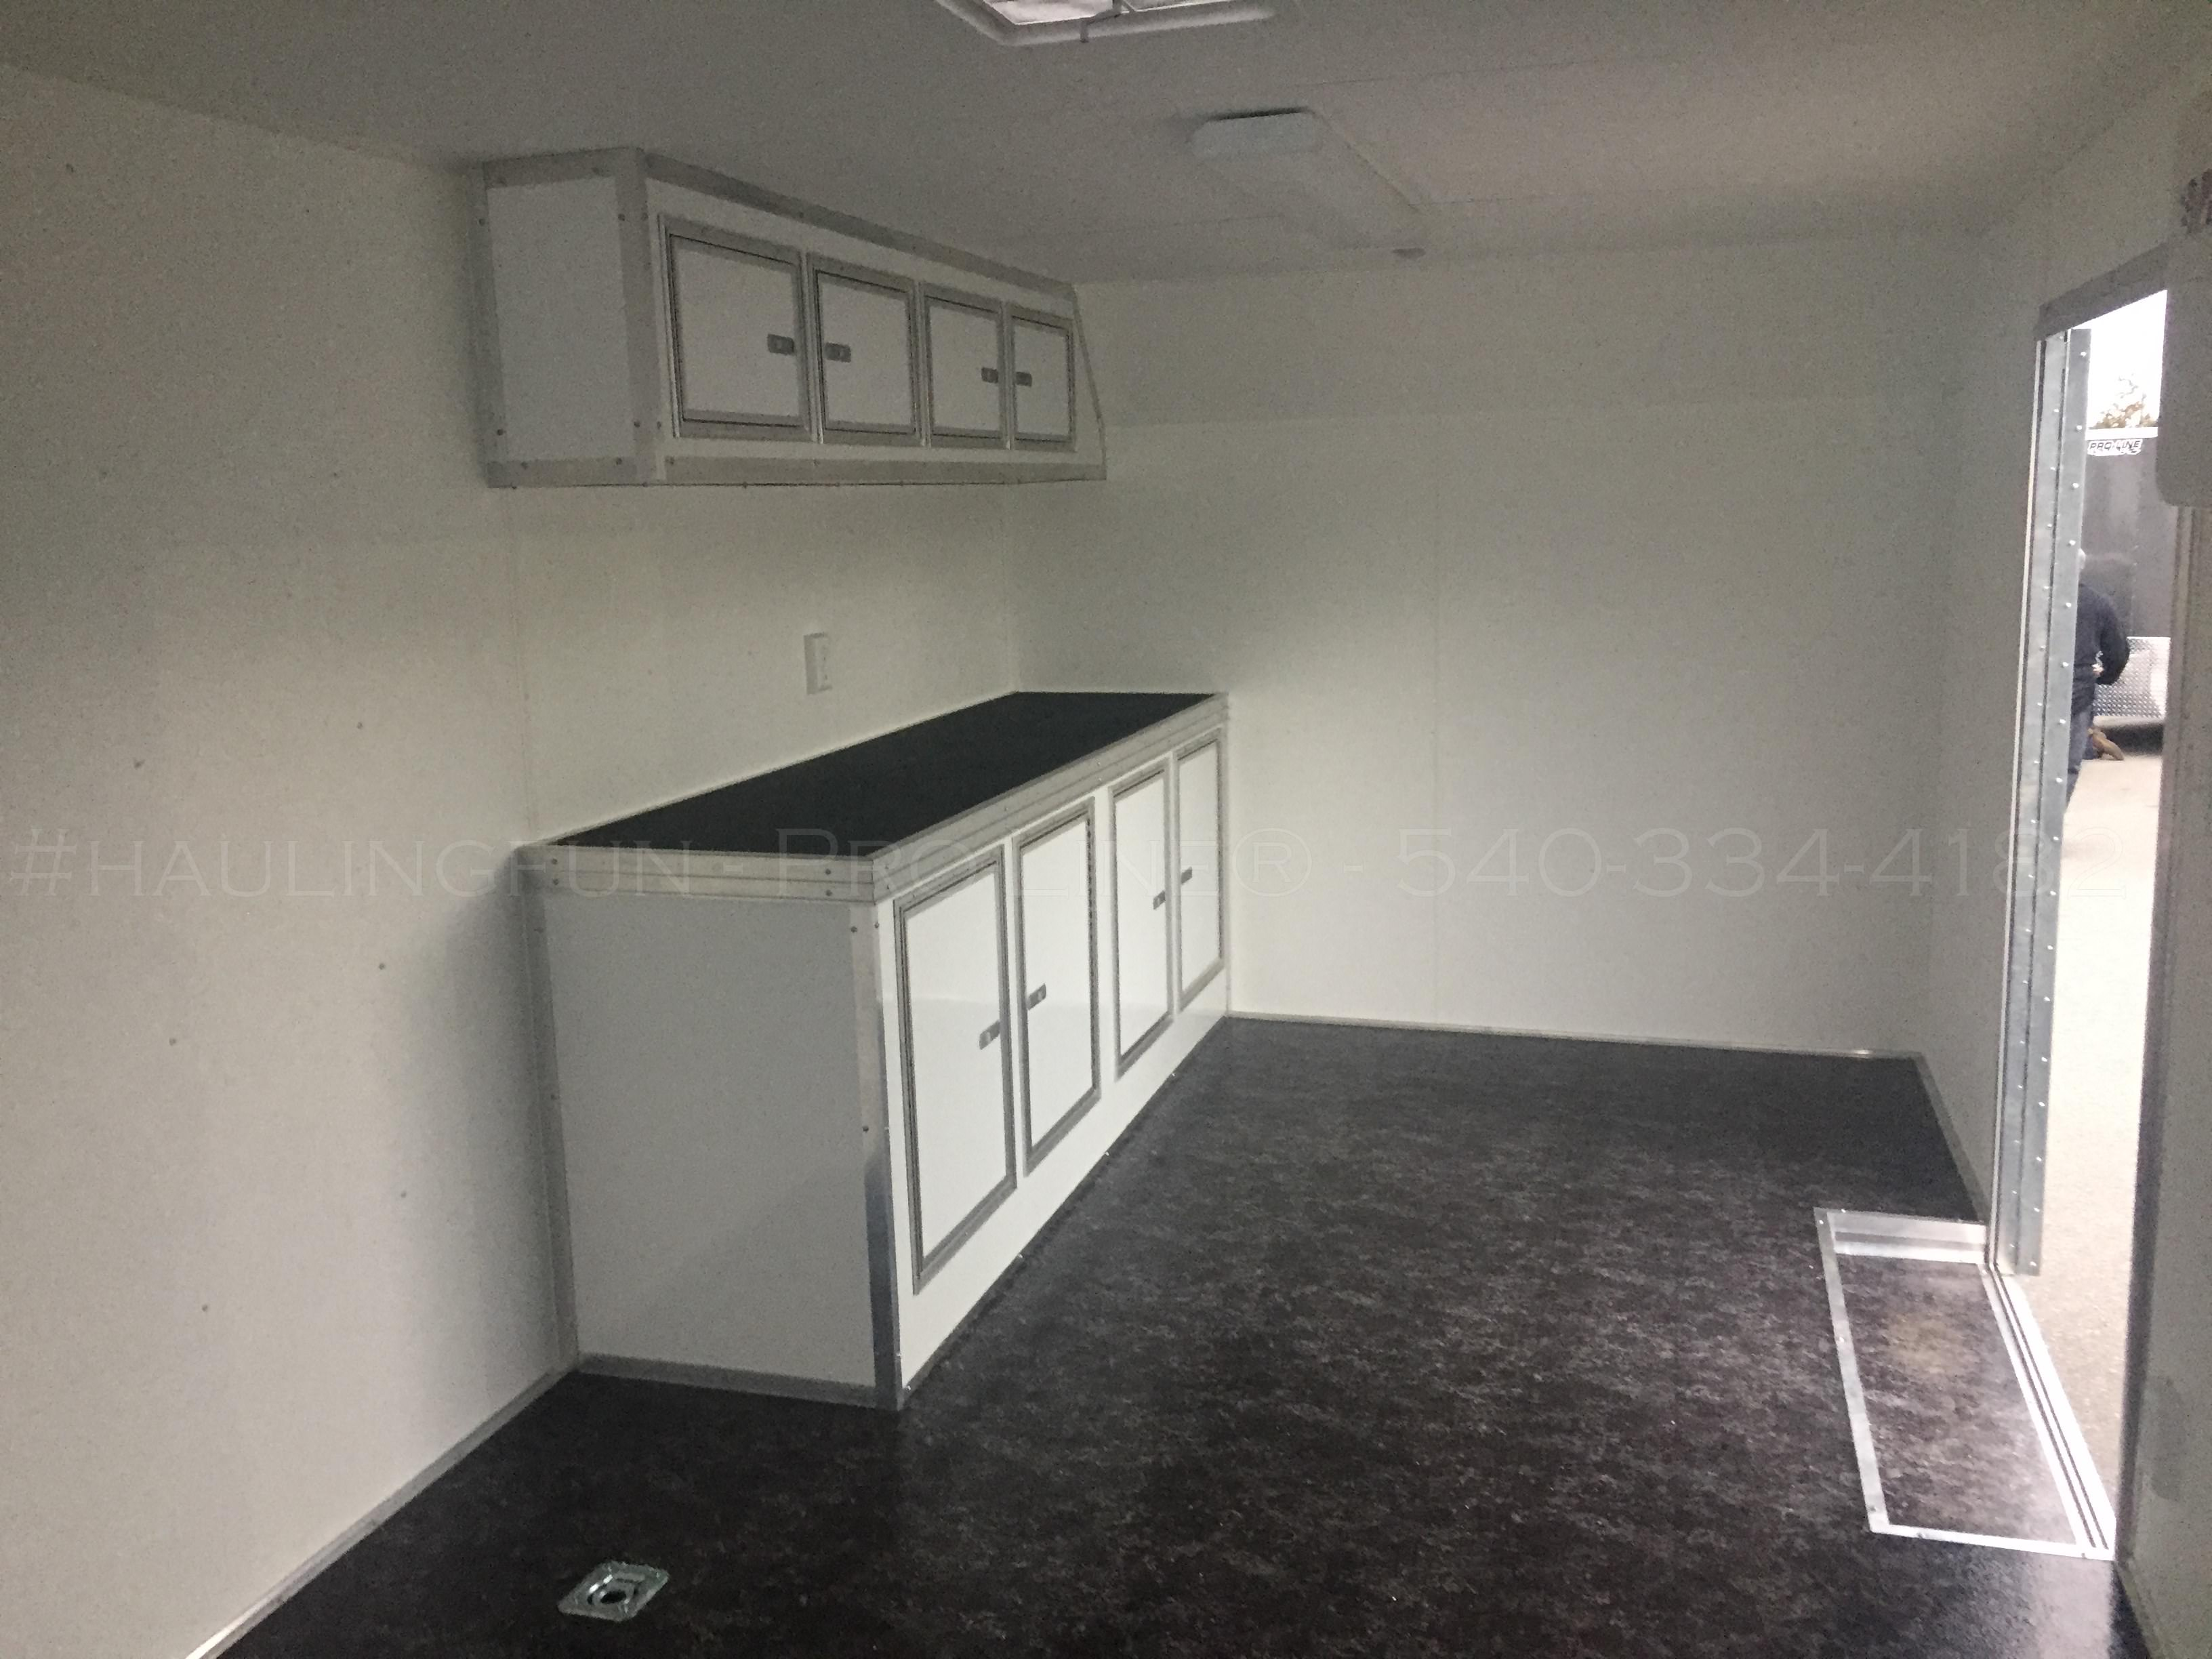 28u2032 Race Trailer With Side Cabinets